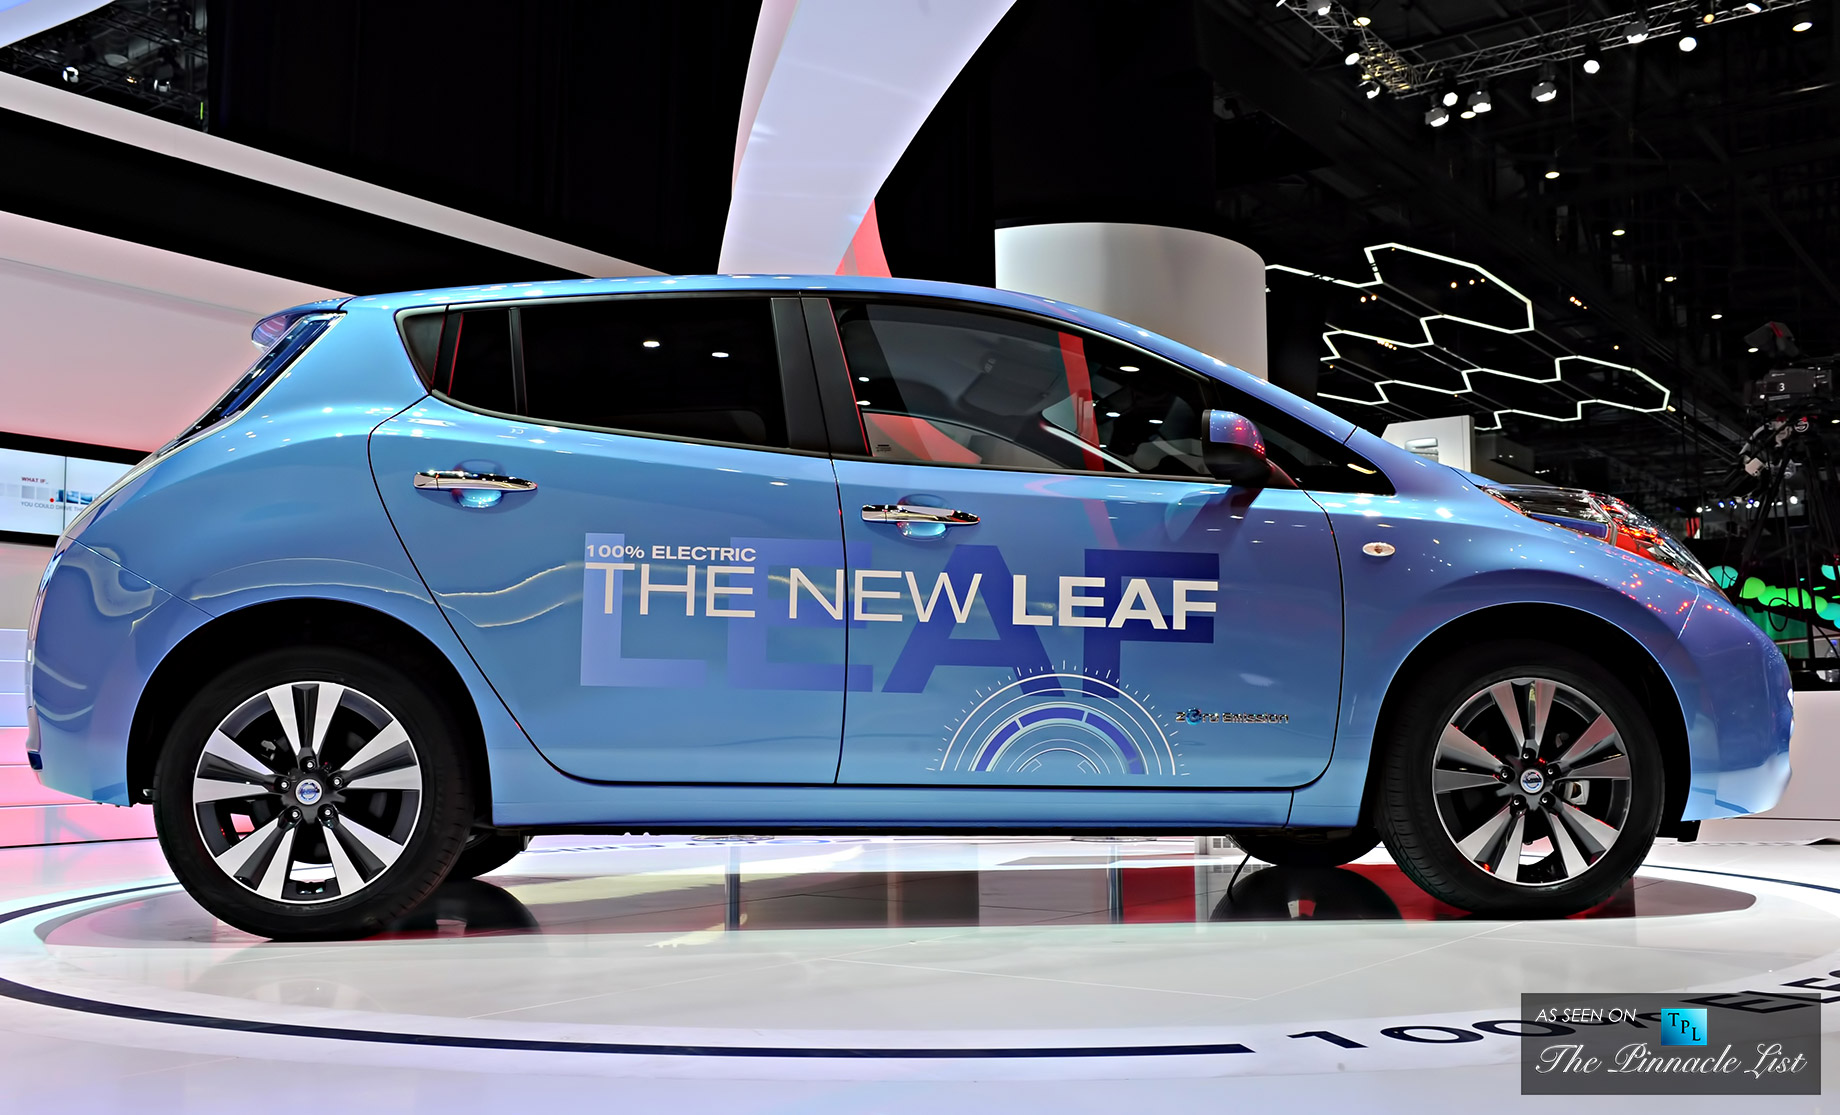 Nissan Leaf - The New Car Market is Back - 4 Hot Cars Sure to Impress in 2014